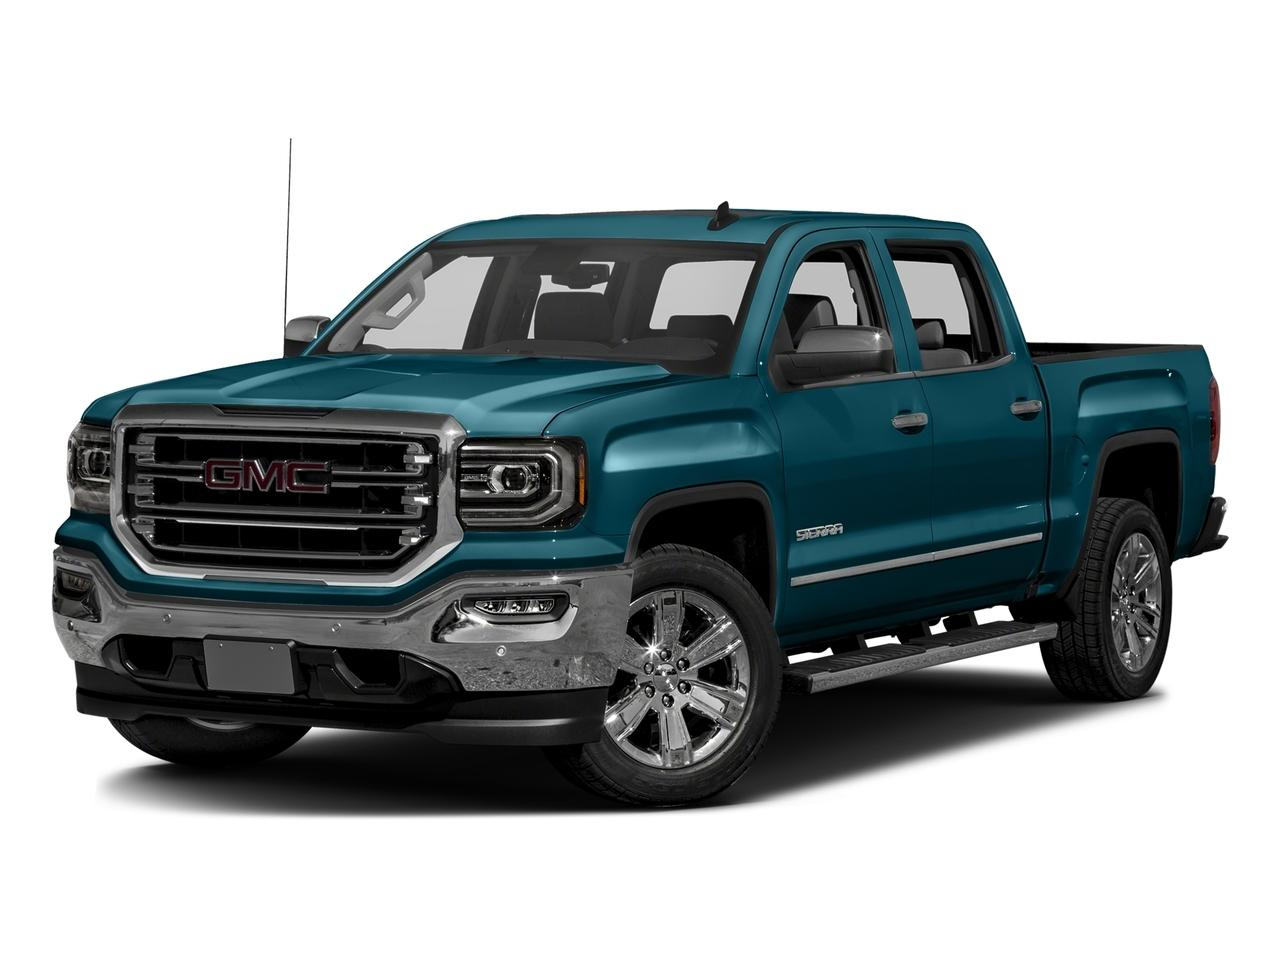 2017 GMC Sierra 1500 Vehicle Photo in Danville, KY 40422